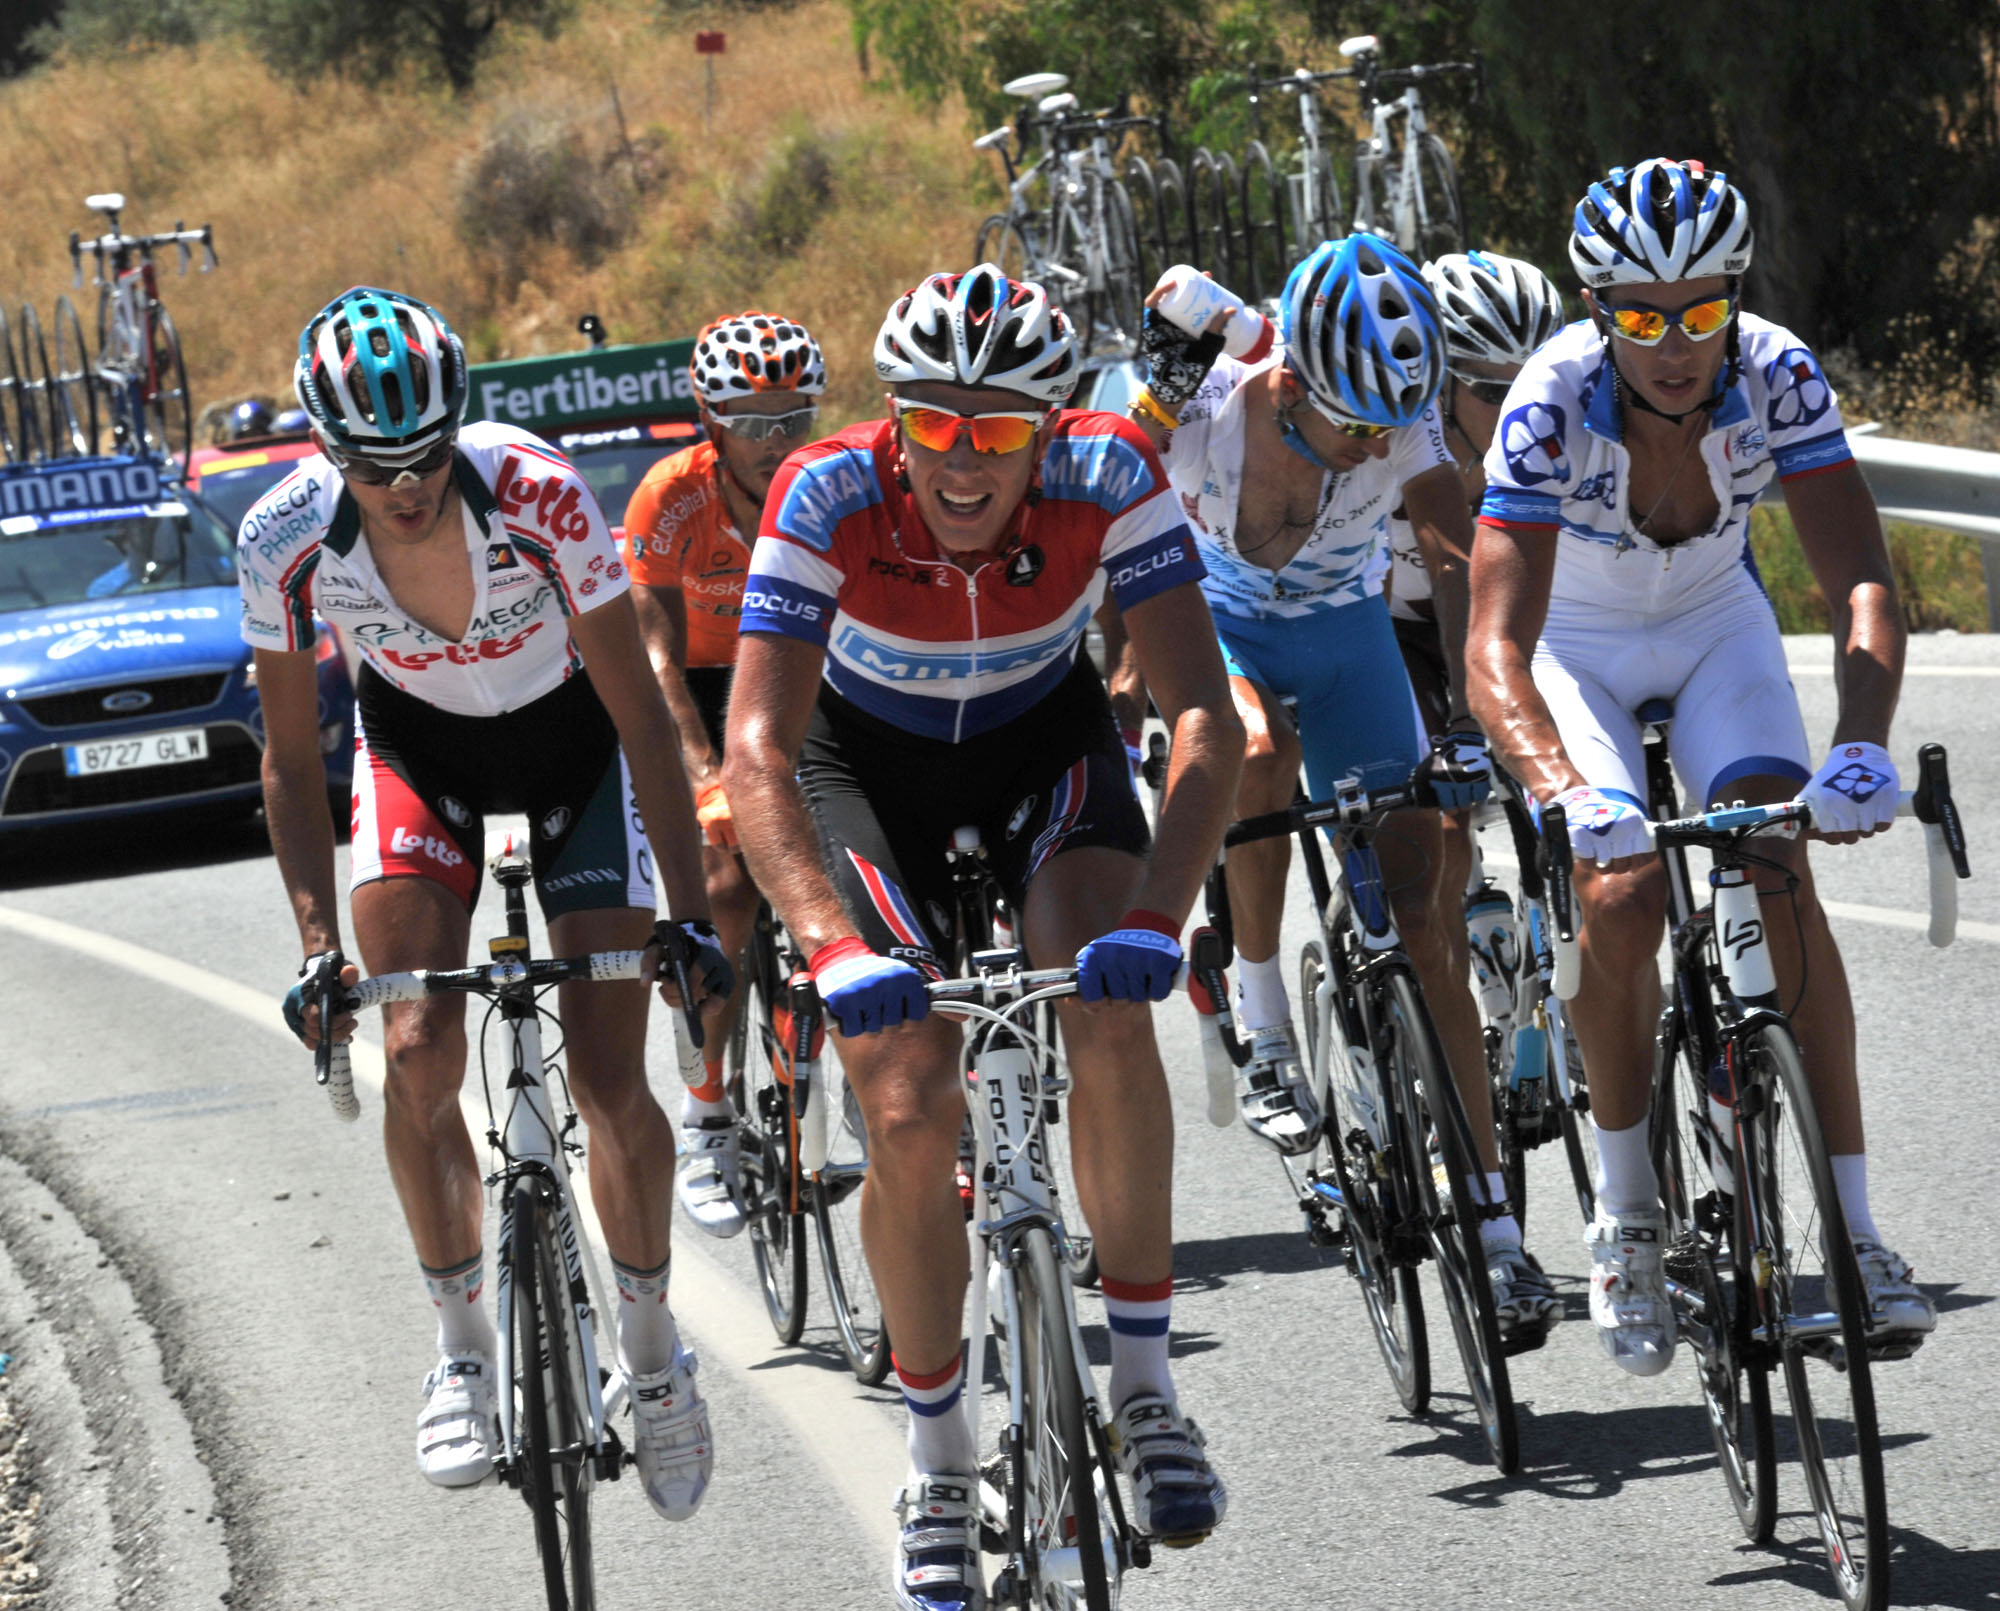 Niki Terpstra escape, Vuelta a Espana 2010, stage three